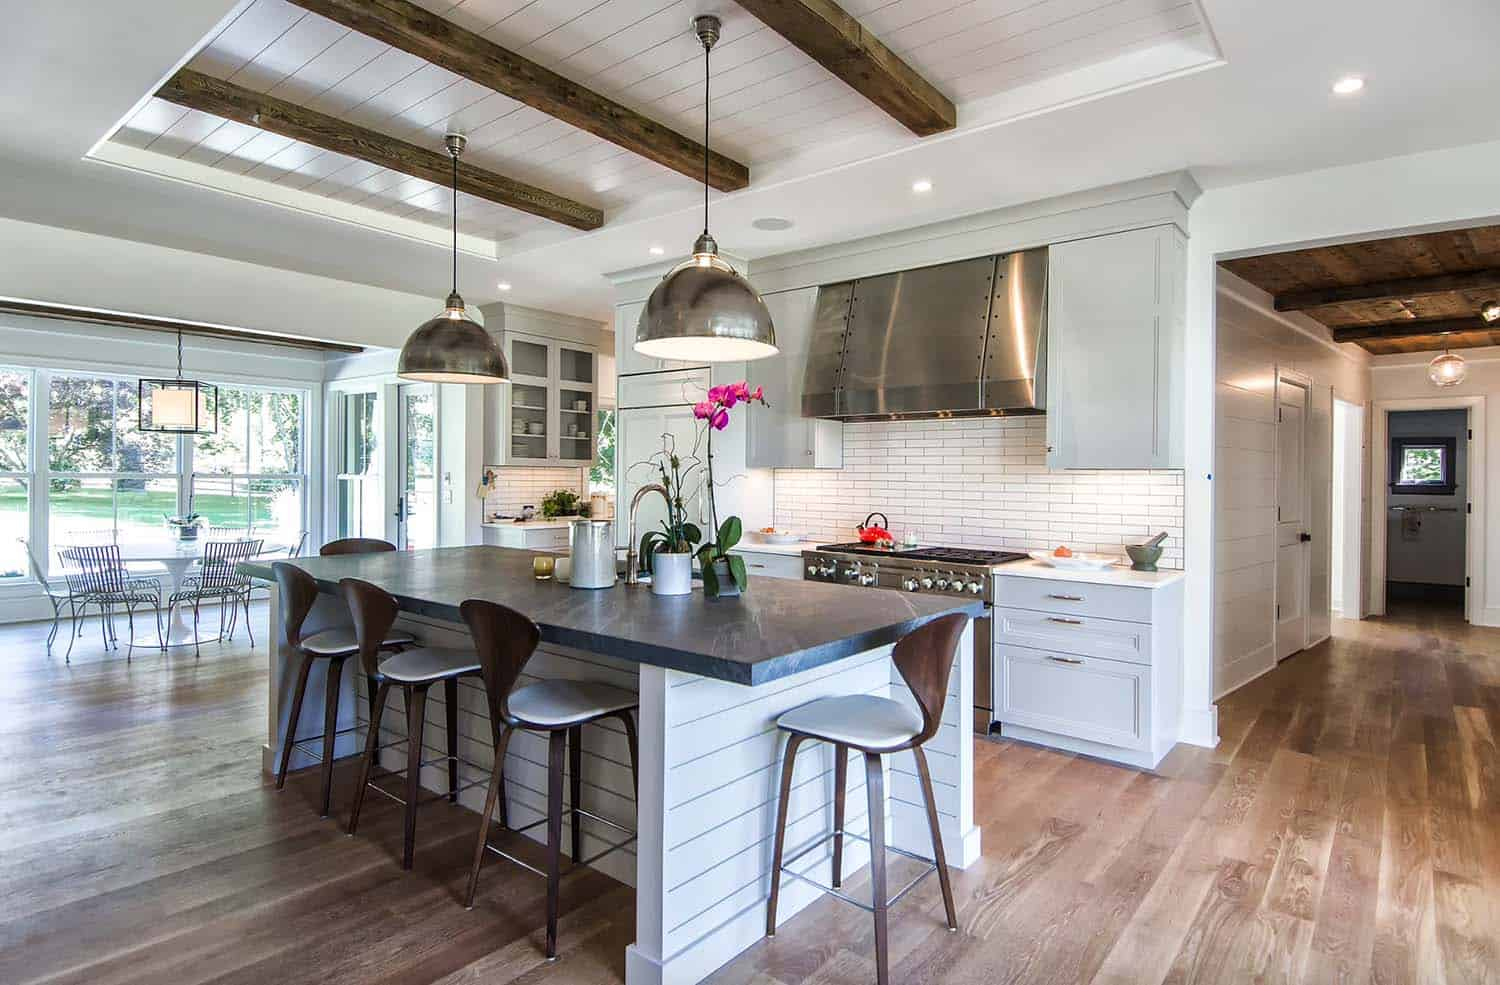 Kitchen Counter And Stools 35 Amazingly Creative And Stylish Farmhouse Kitchen Ideas